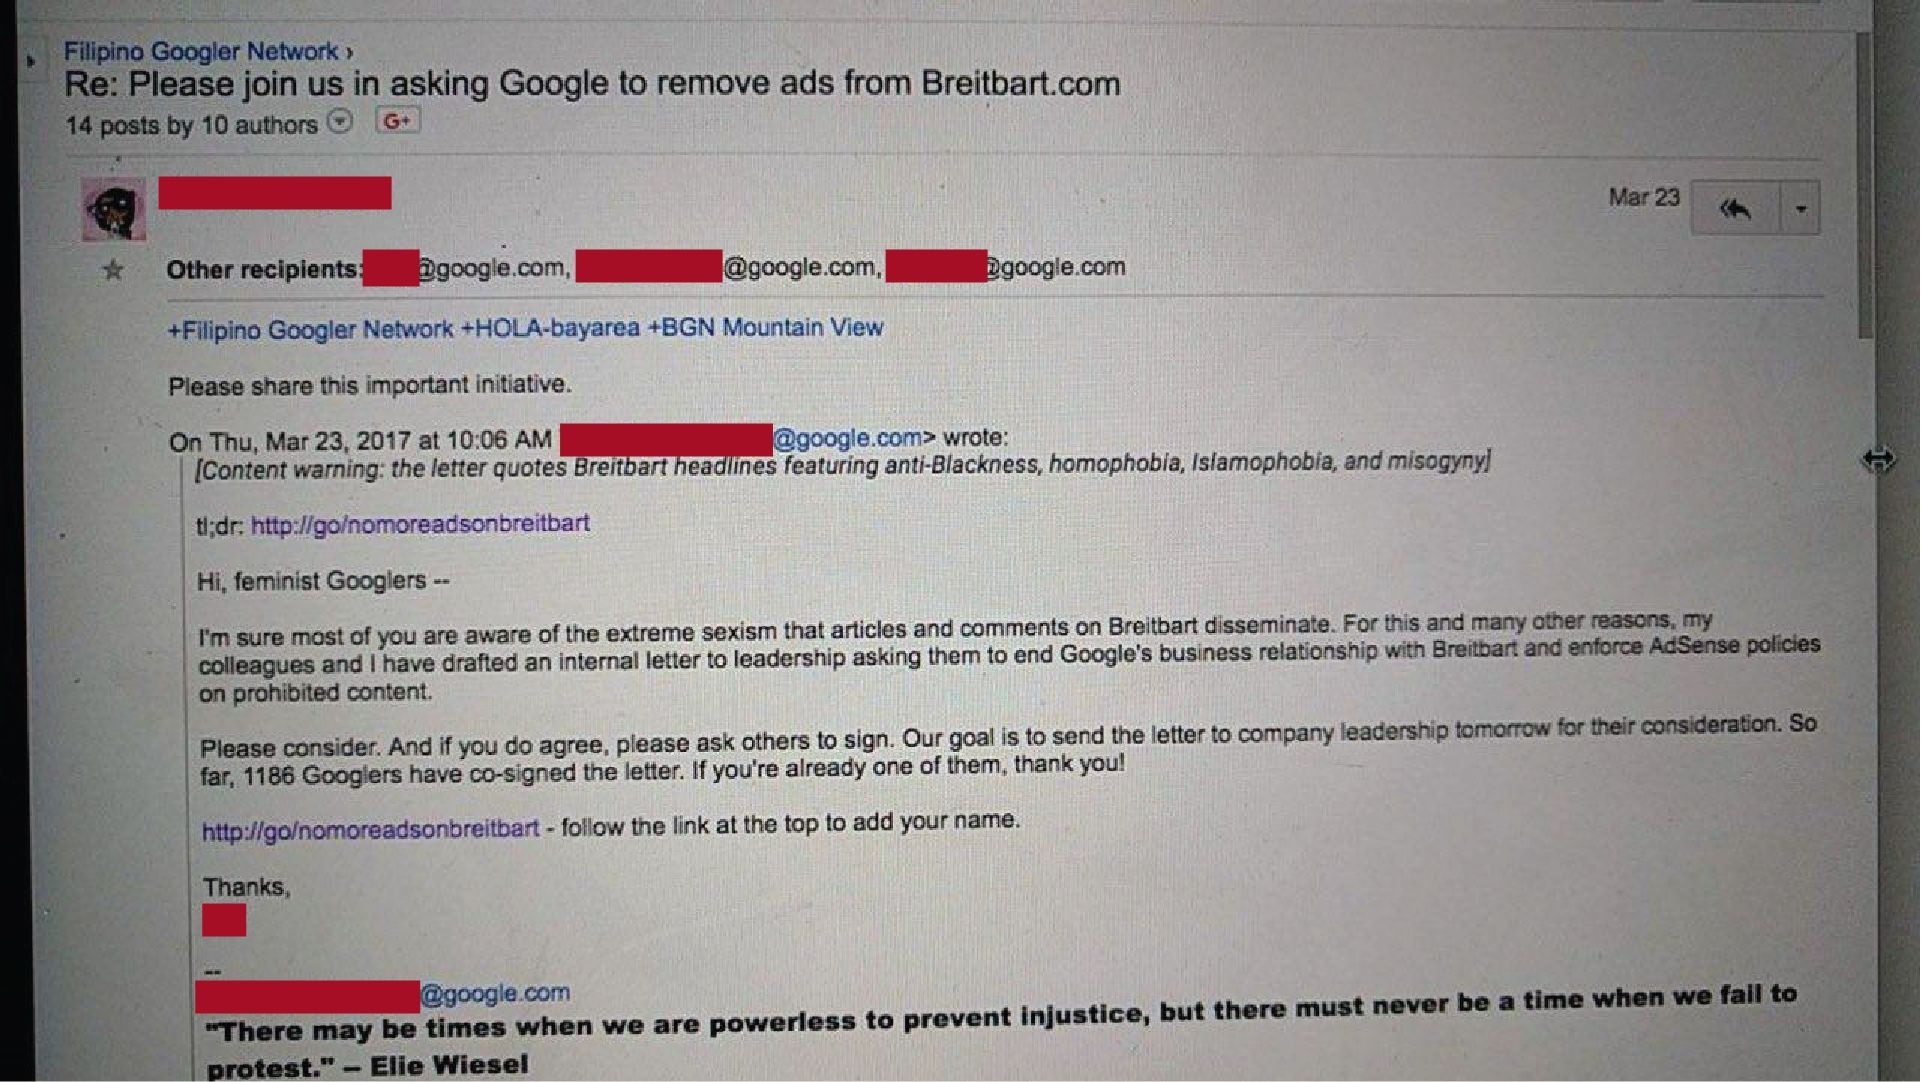 A leaked Google email discussing an internal letter which asks Google leadership to end its relationship with Breitbart.